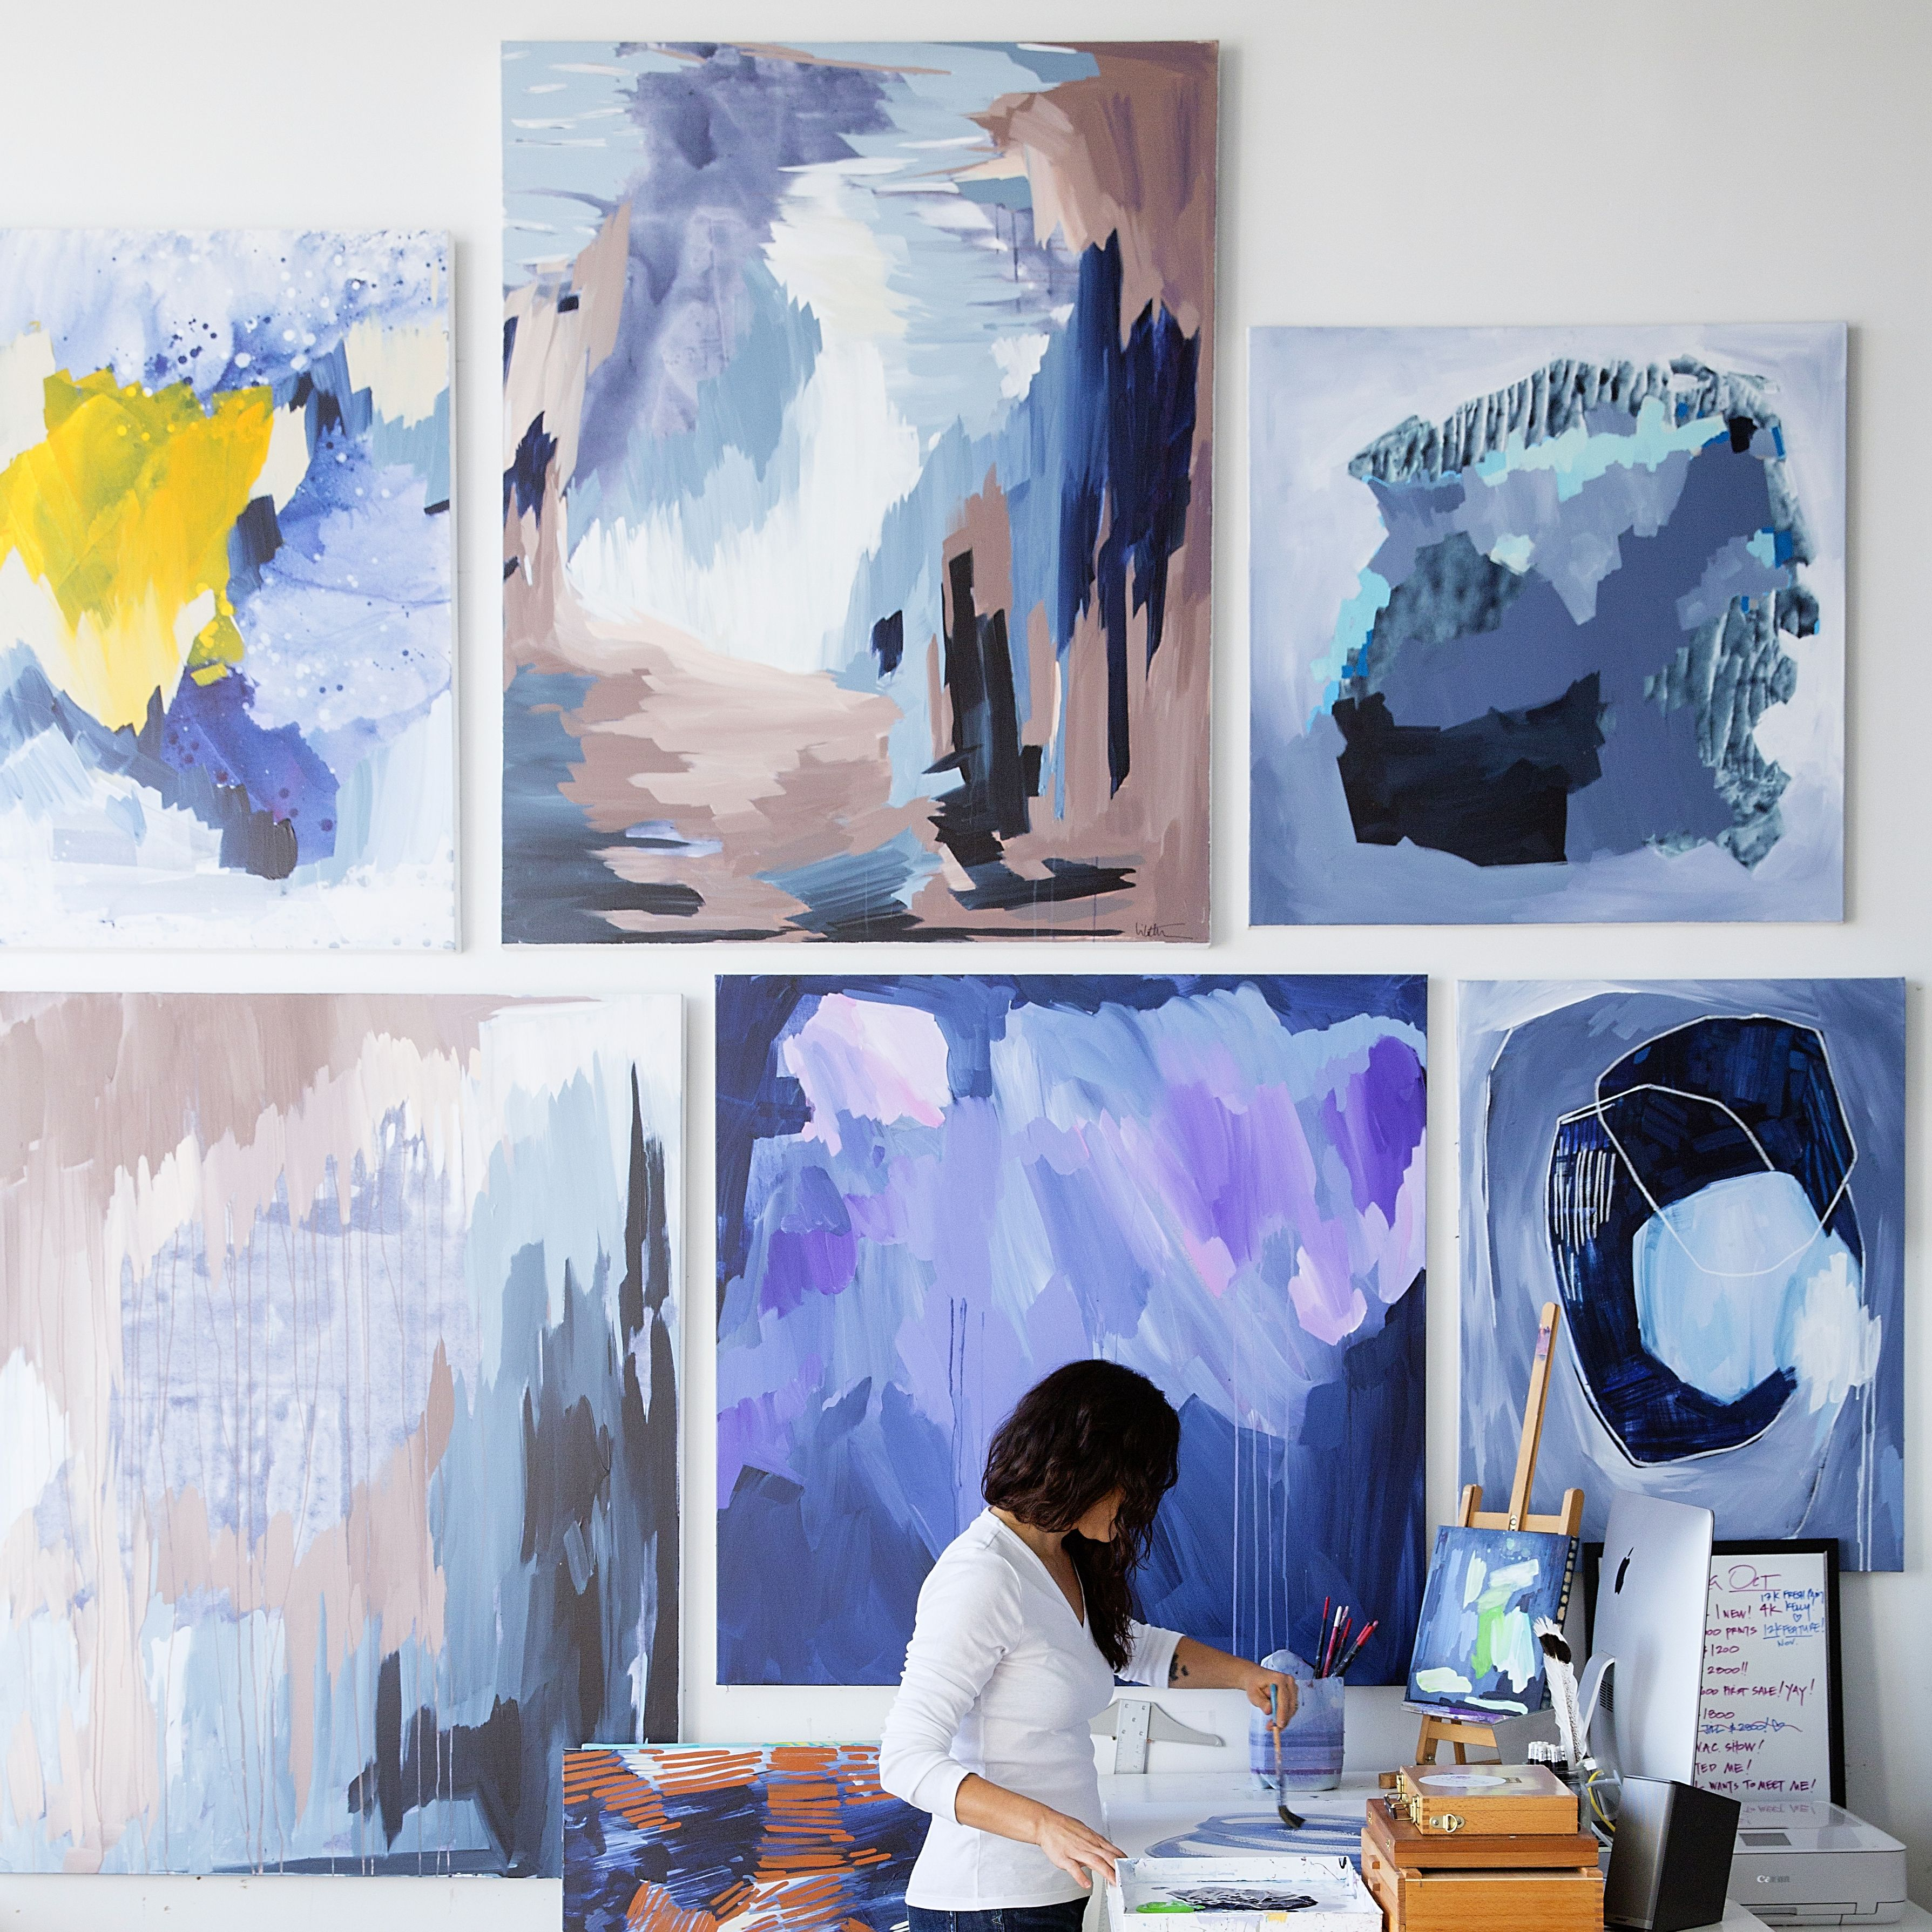 6Artists Who Paint With Everything but Their Hands, soPollock Wasn't That Crazy After All 6Artists Who Paint With Everything but Their Hands, soPollock Wasn't That Crazy After All new pictures